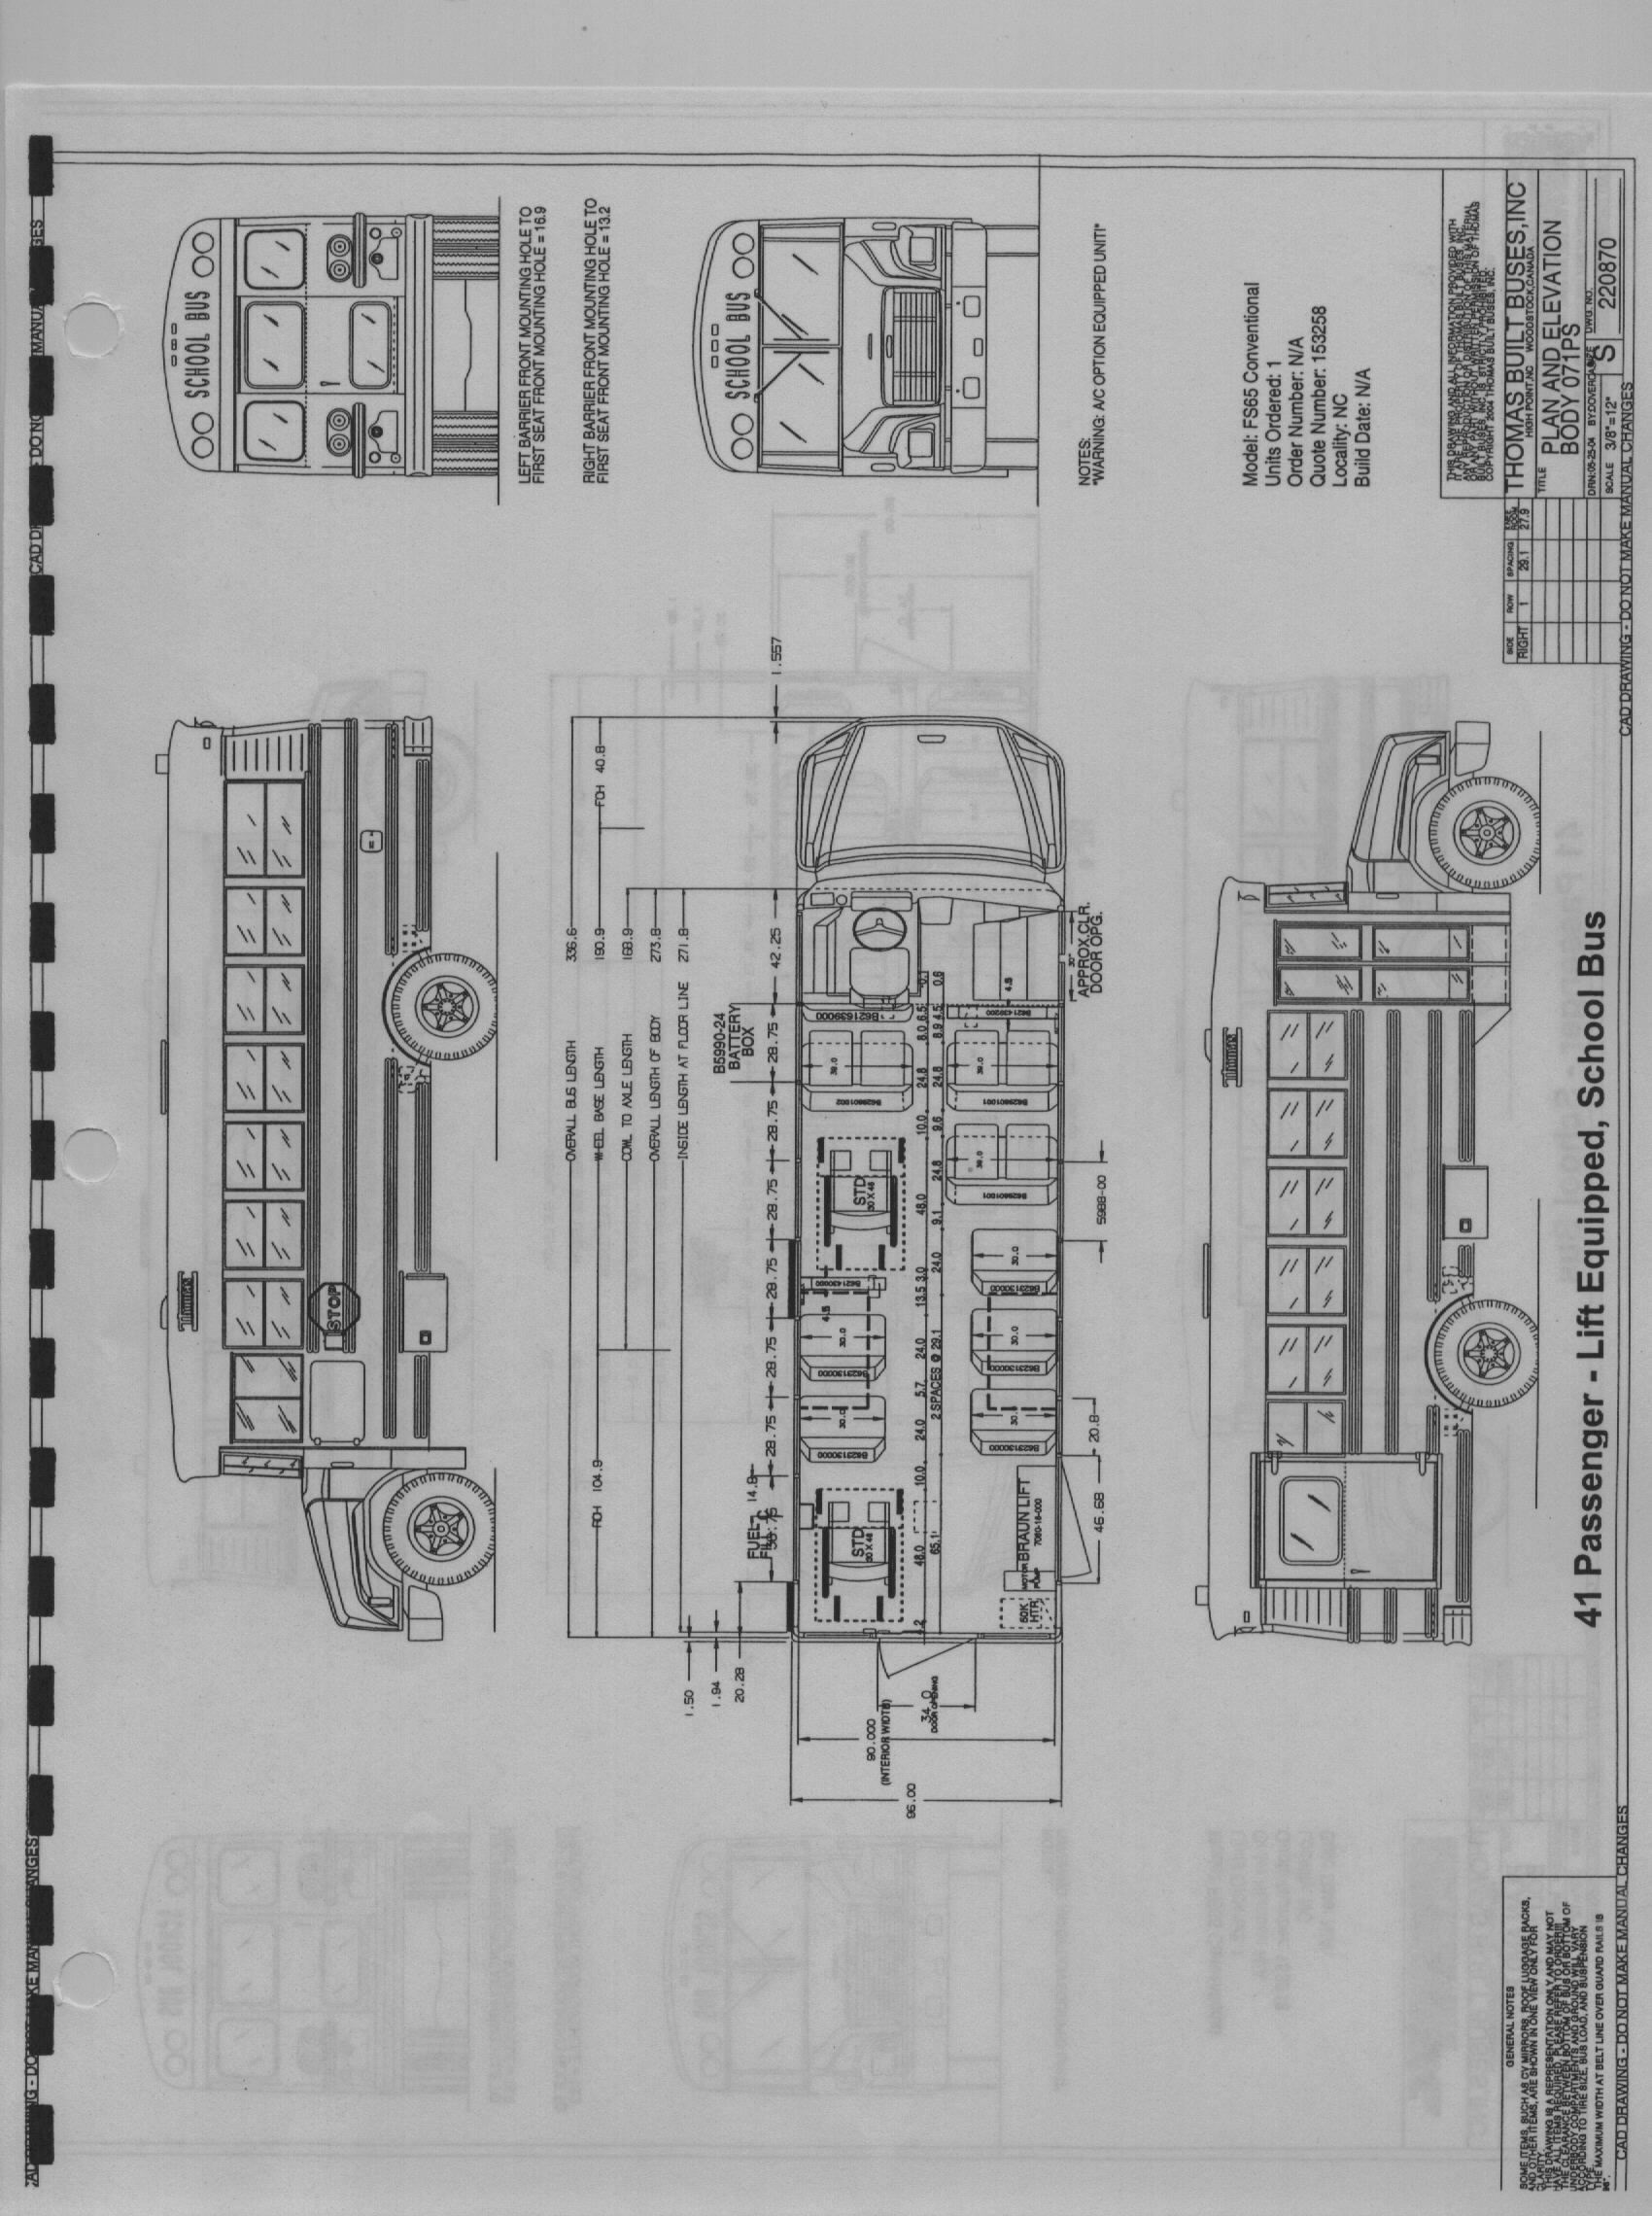 2008 thomas c2 wiring diagram